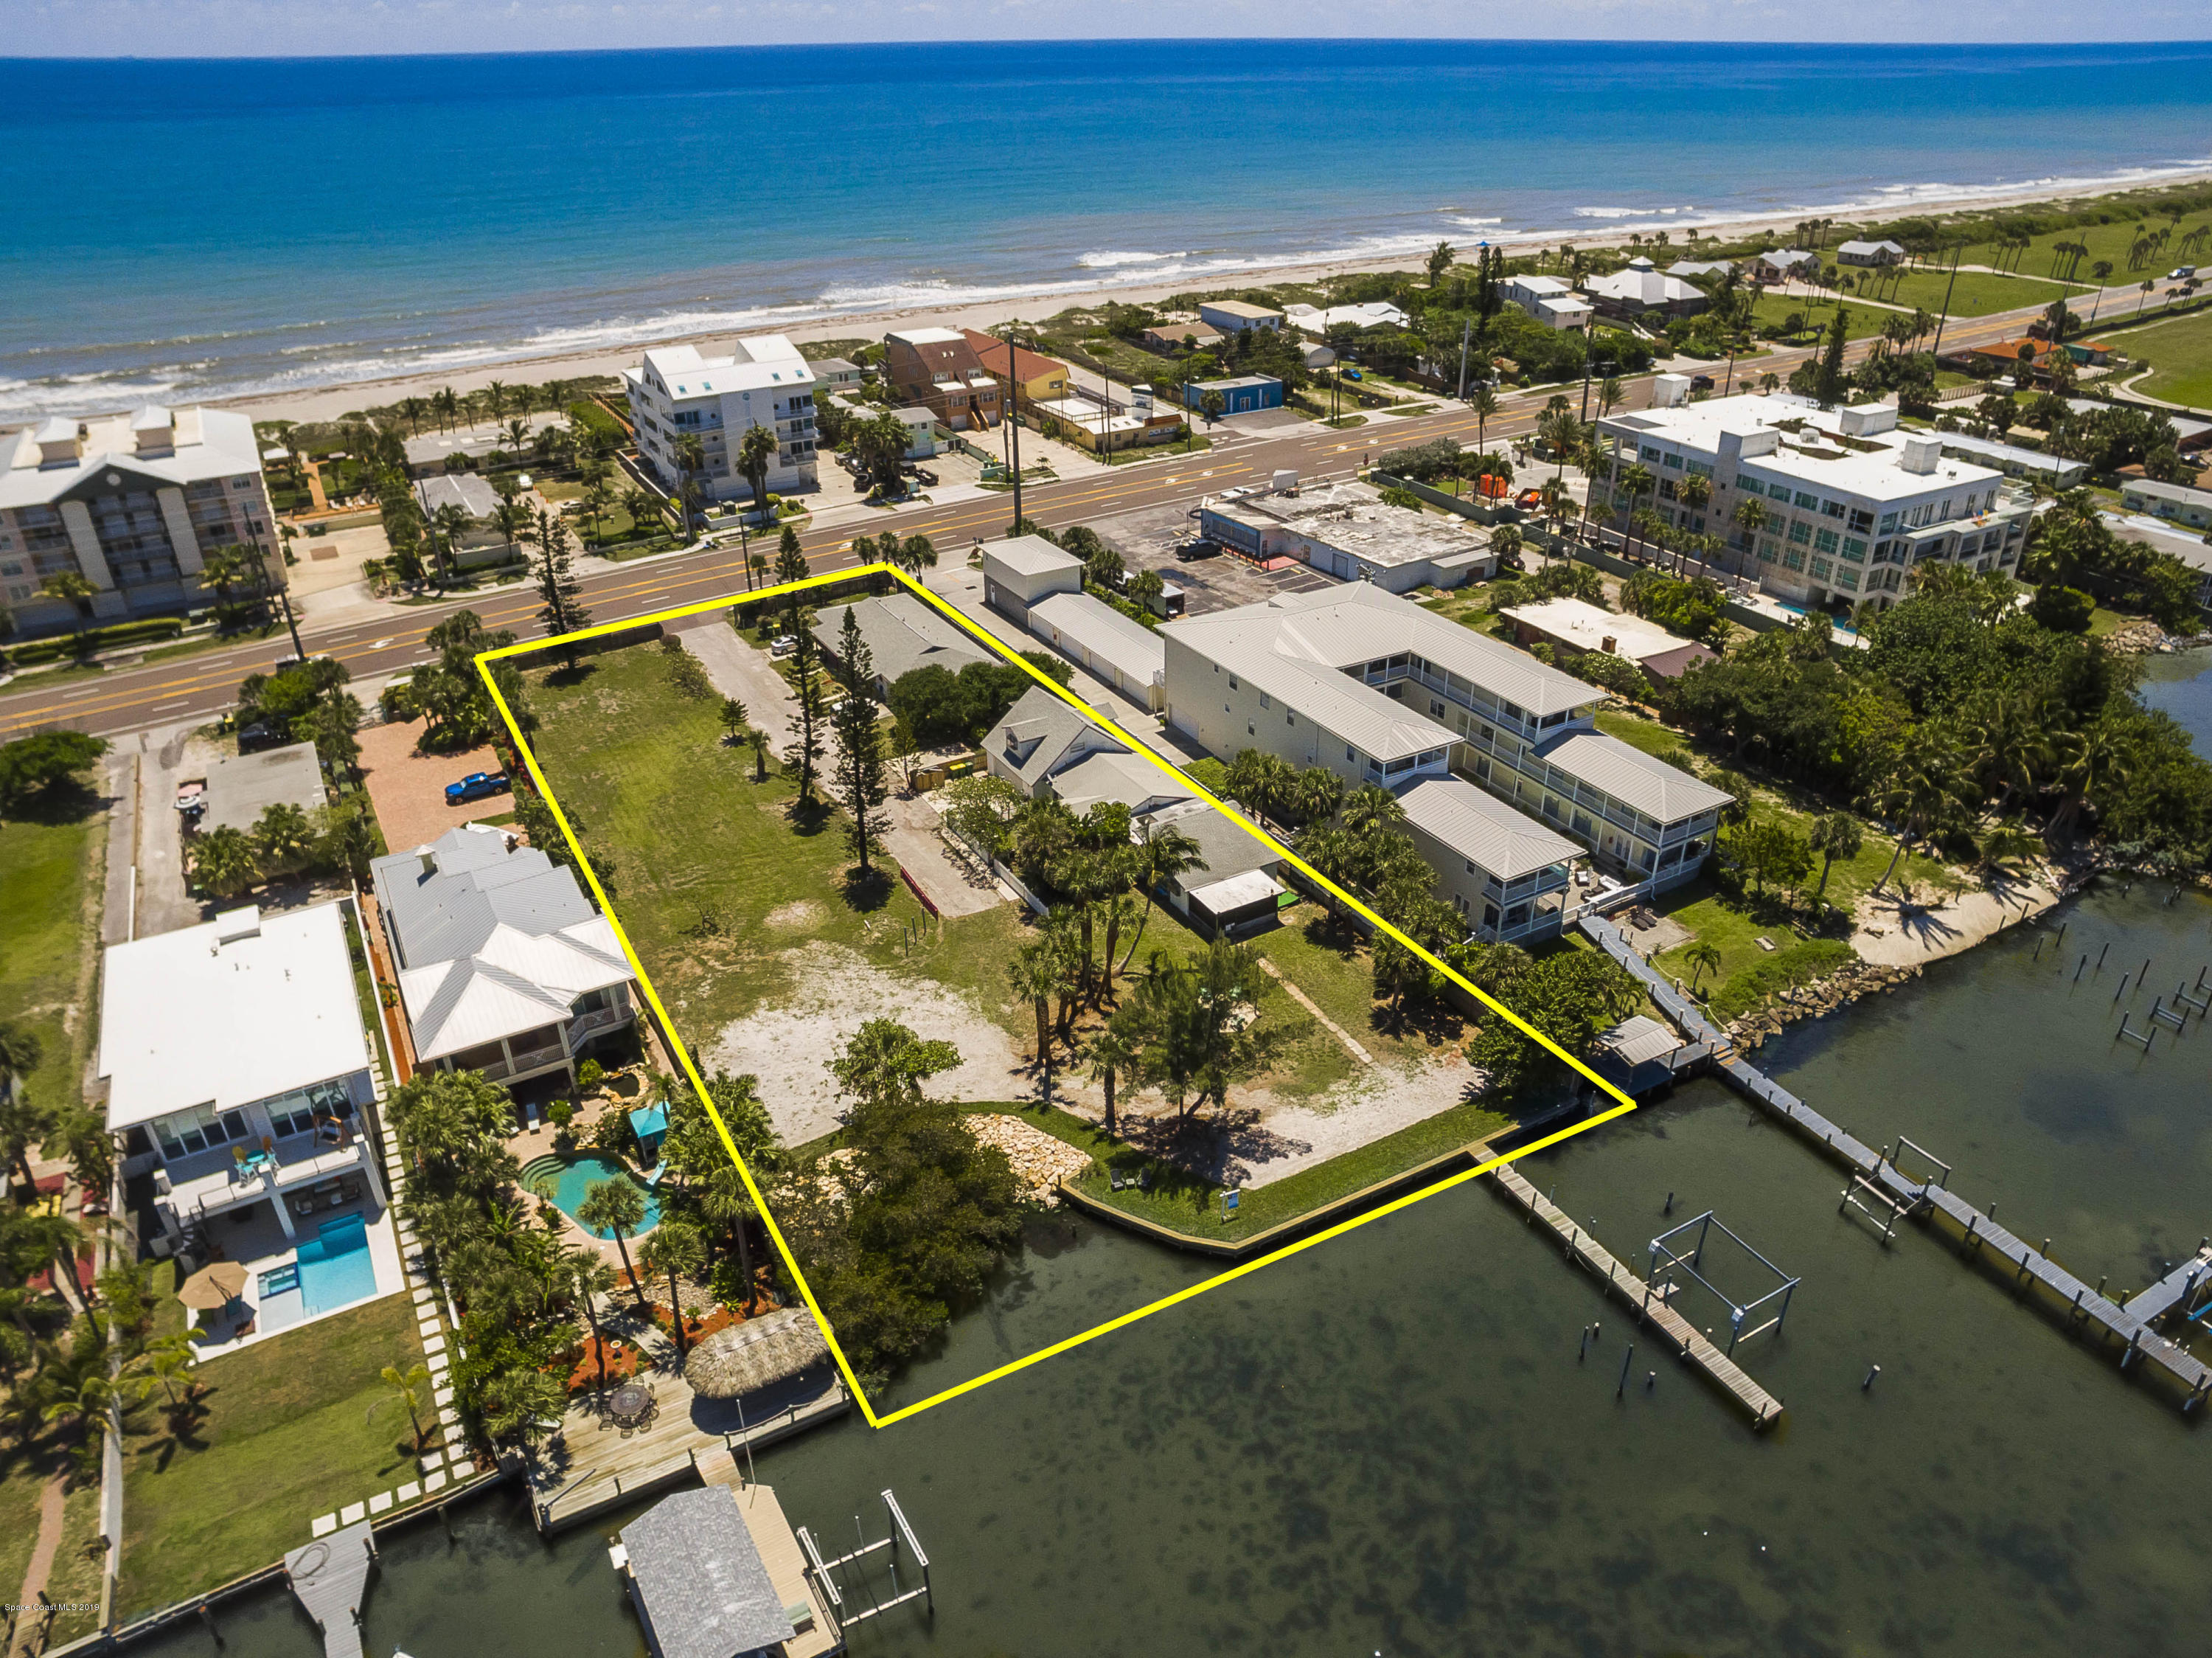 Property for Sale at 3444 S Atlantic Cocoa Beach, Florida 32931 United States